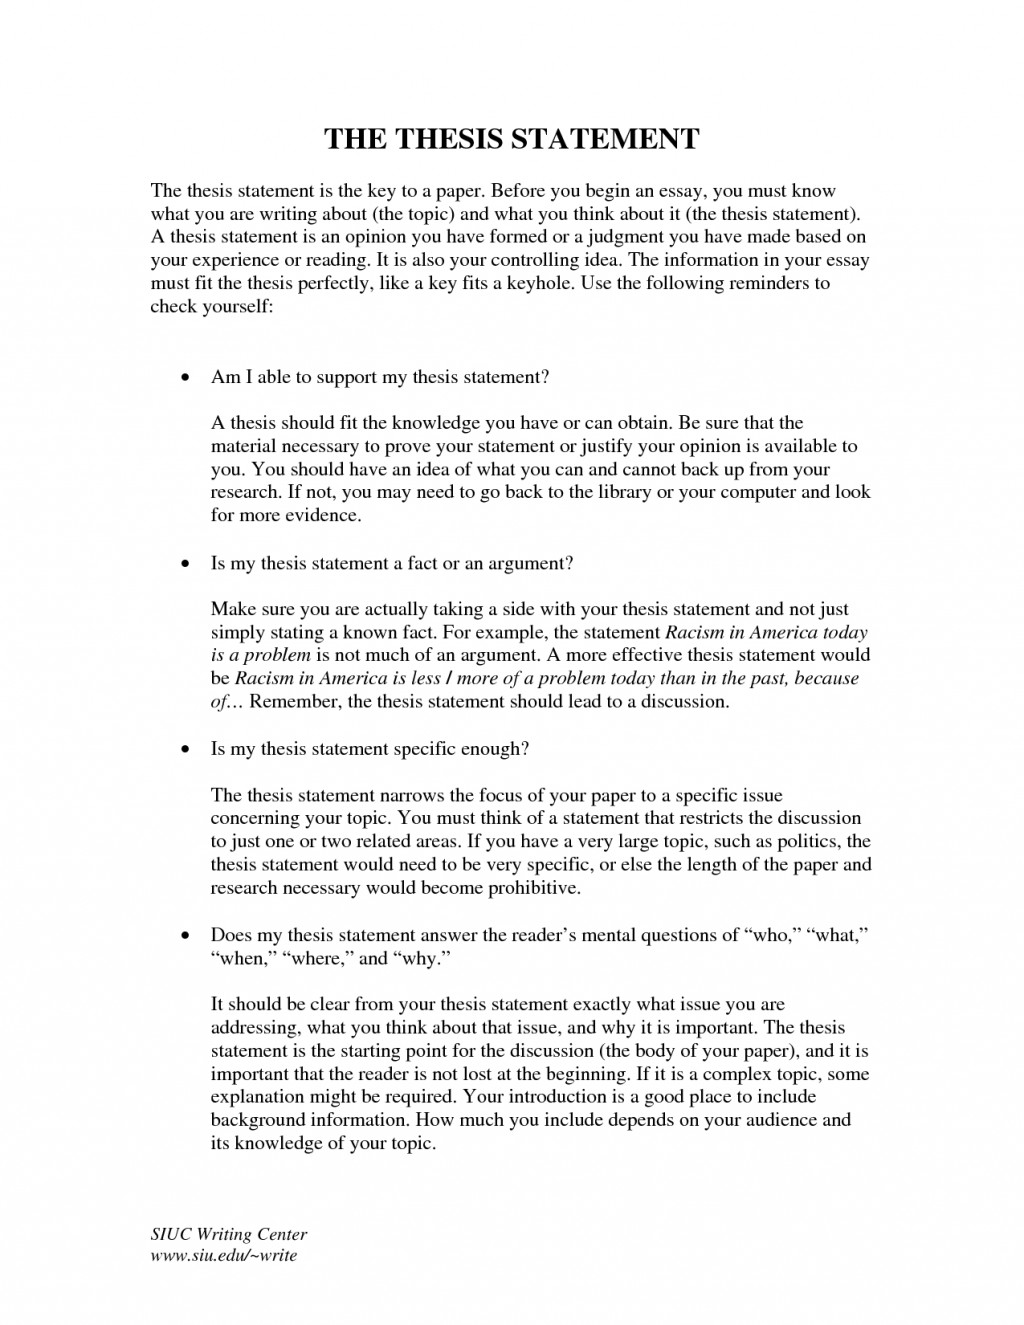 Thesis statement examples for comparison essays ideas